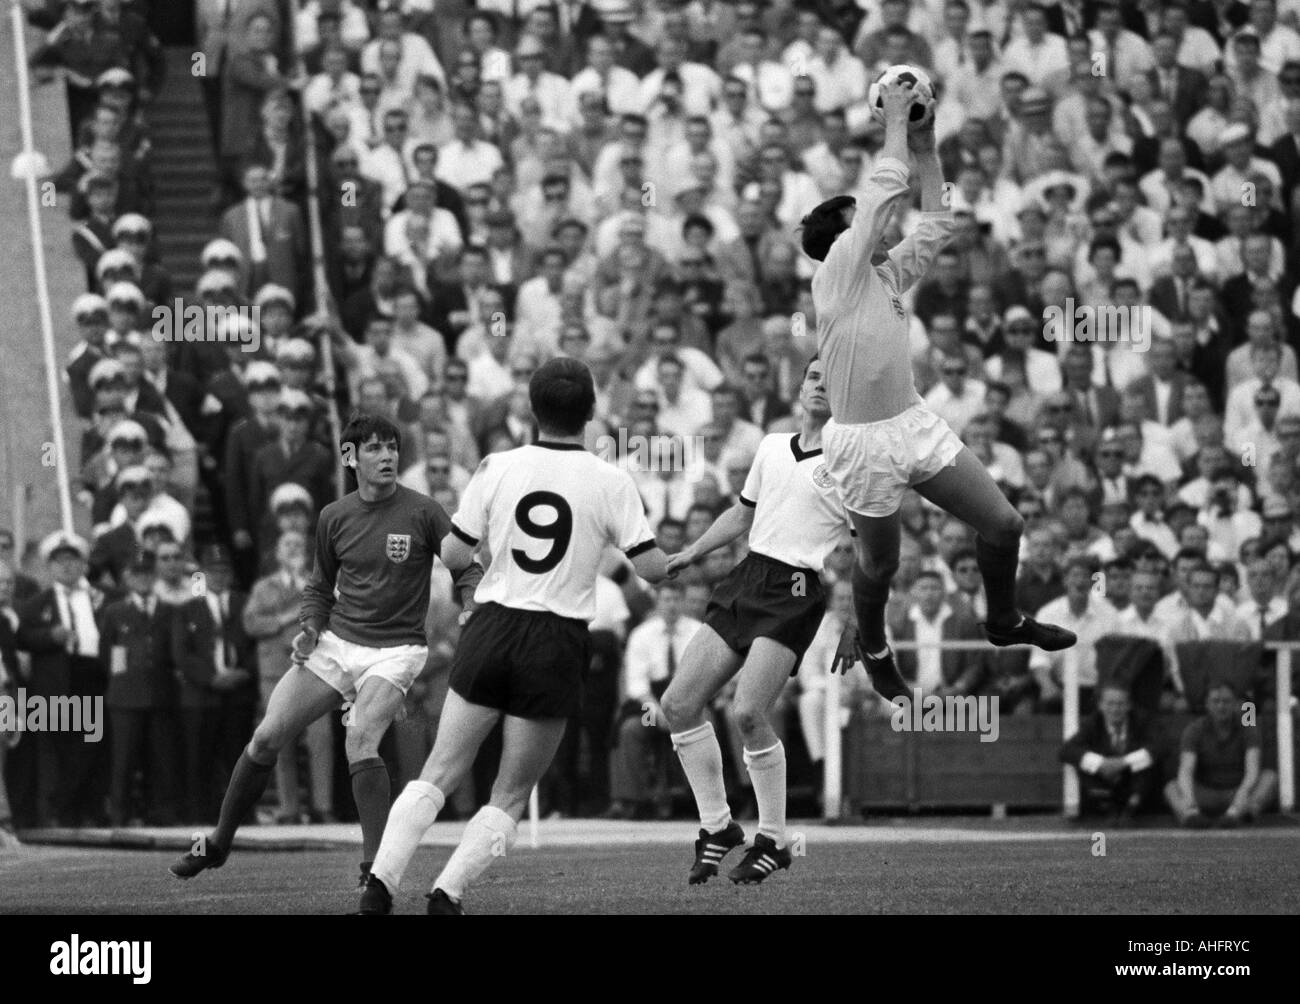 football, international match, 1968, Niedersachsen Stadium in Hanover, Germany versus England 1:0, scene of the match, f.l.t.r. Cyril Knowles (England), Hennes Loehr (FRG, 9), Franz Beckenbauer (FRG), keeper Gordon Banks (England) - Stock Image